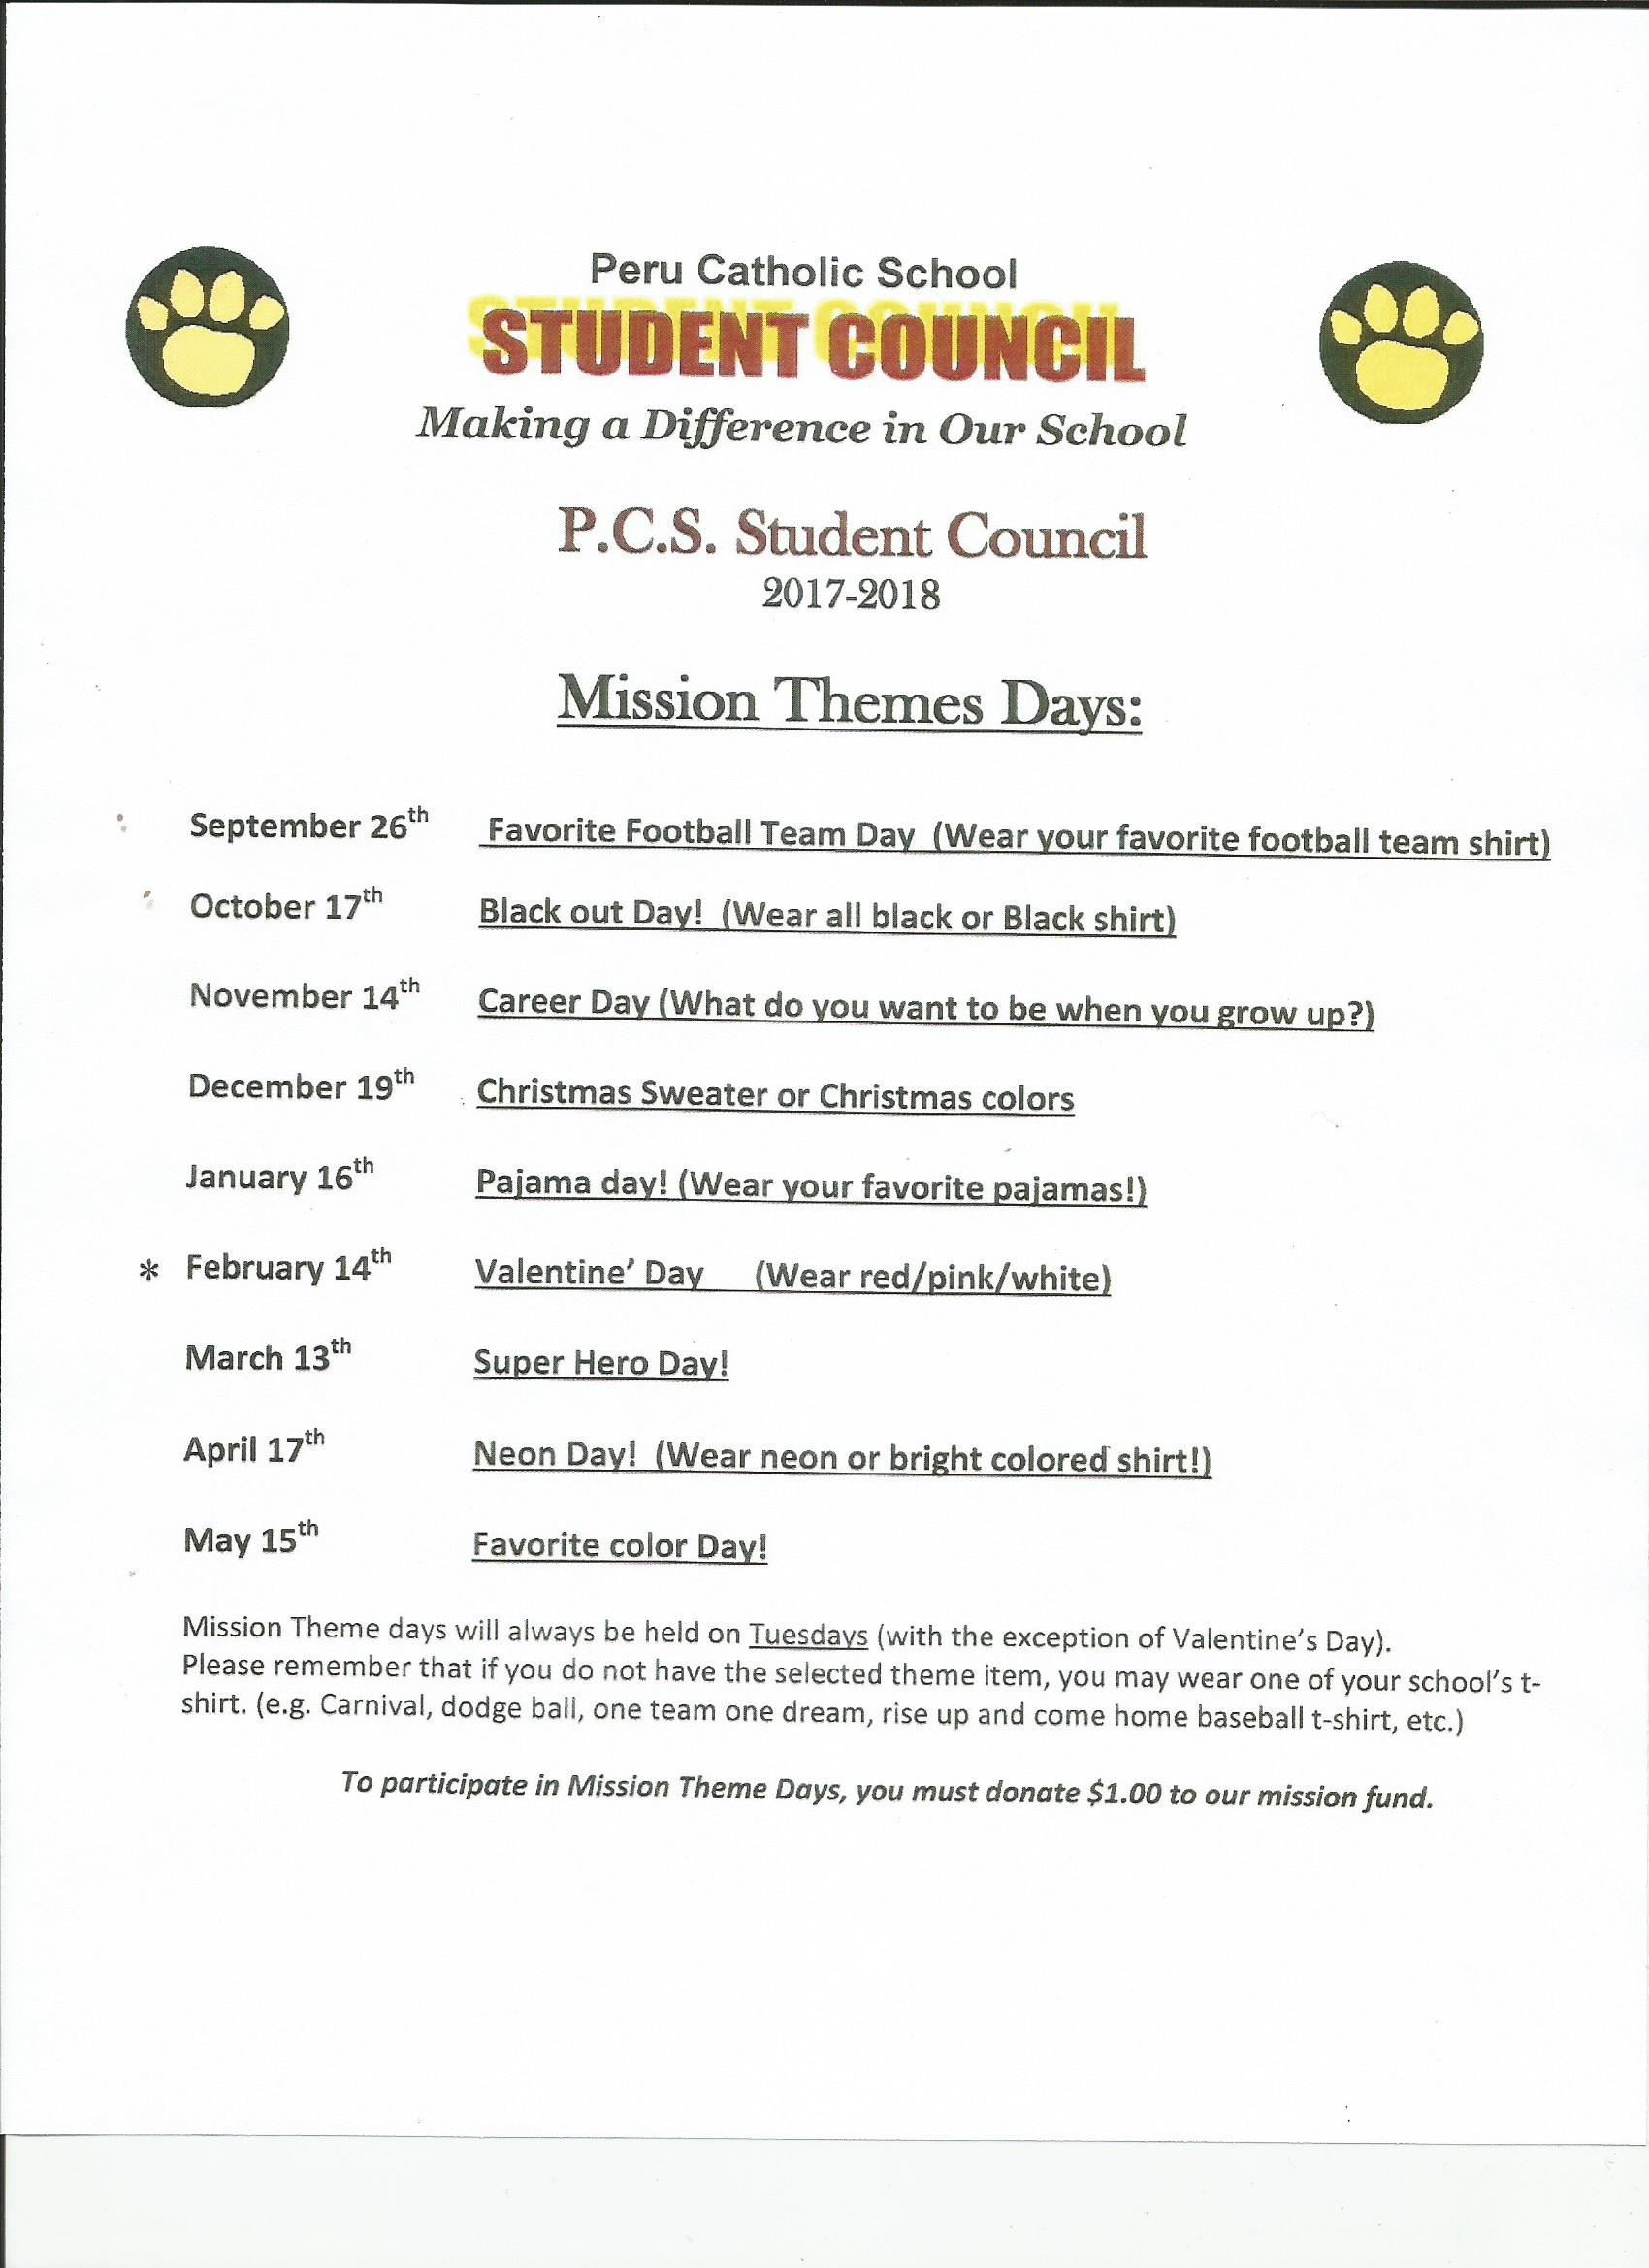 mission theme days 2017-18